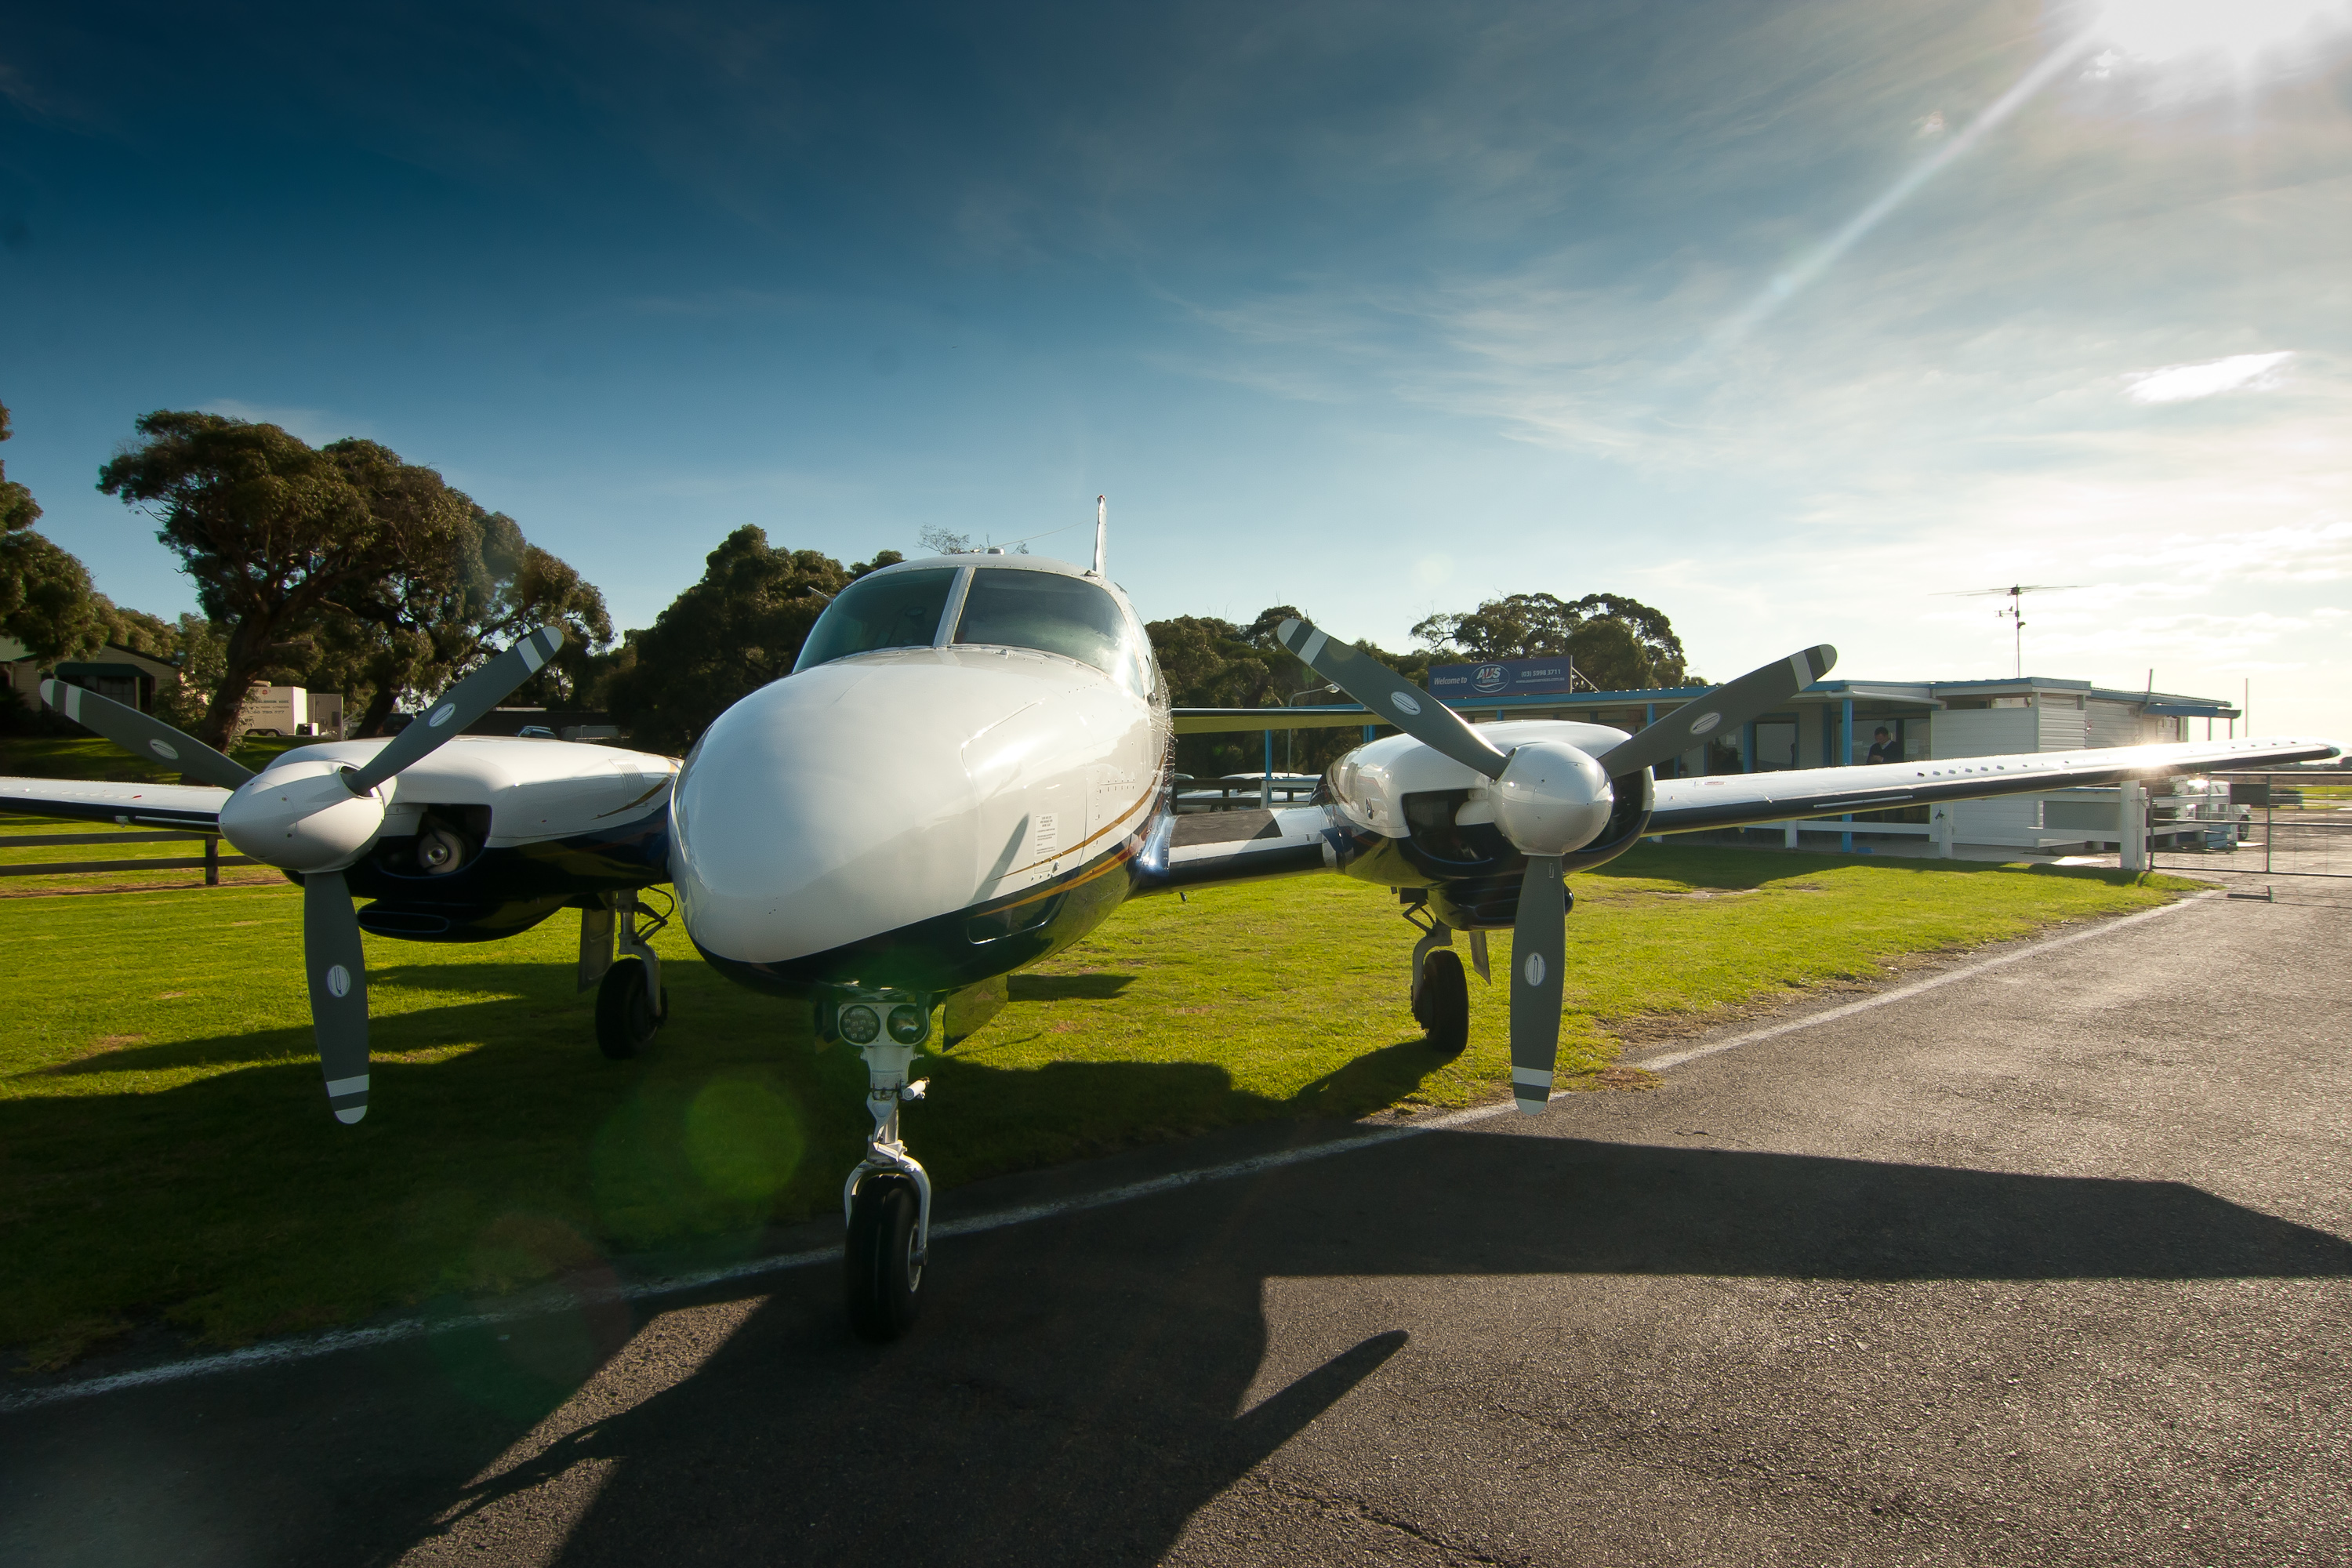 Private Charter - Tooradin